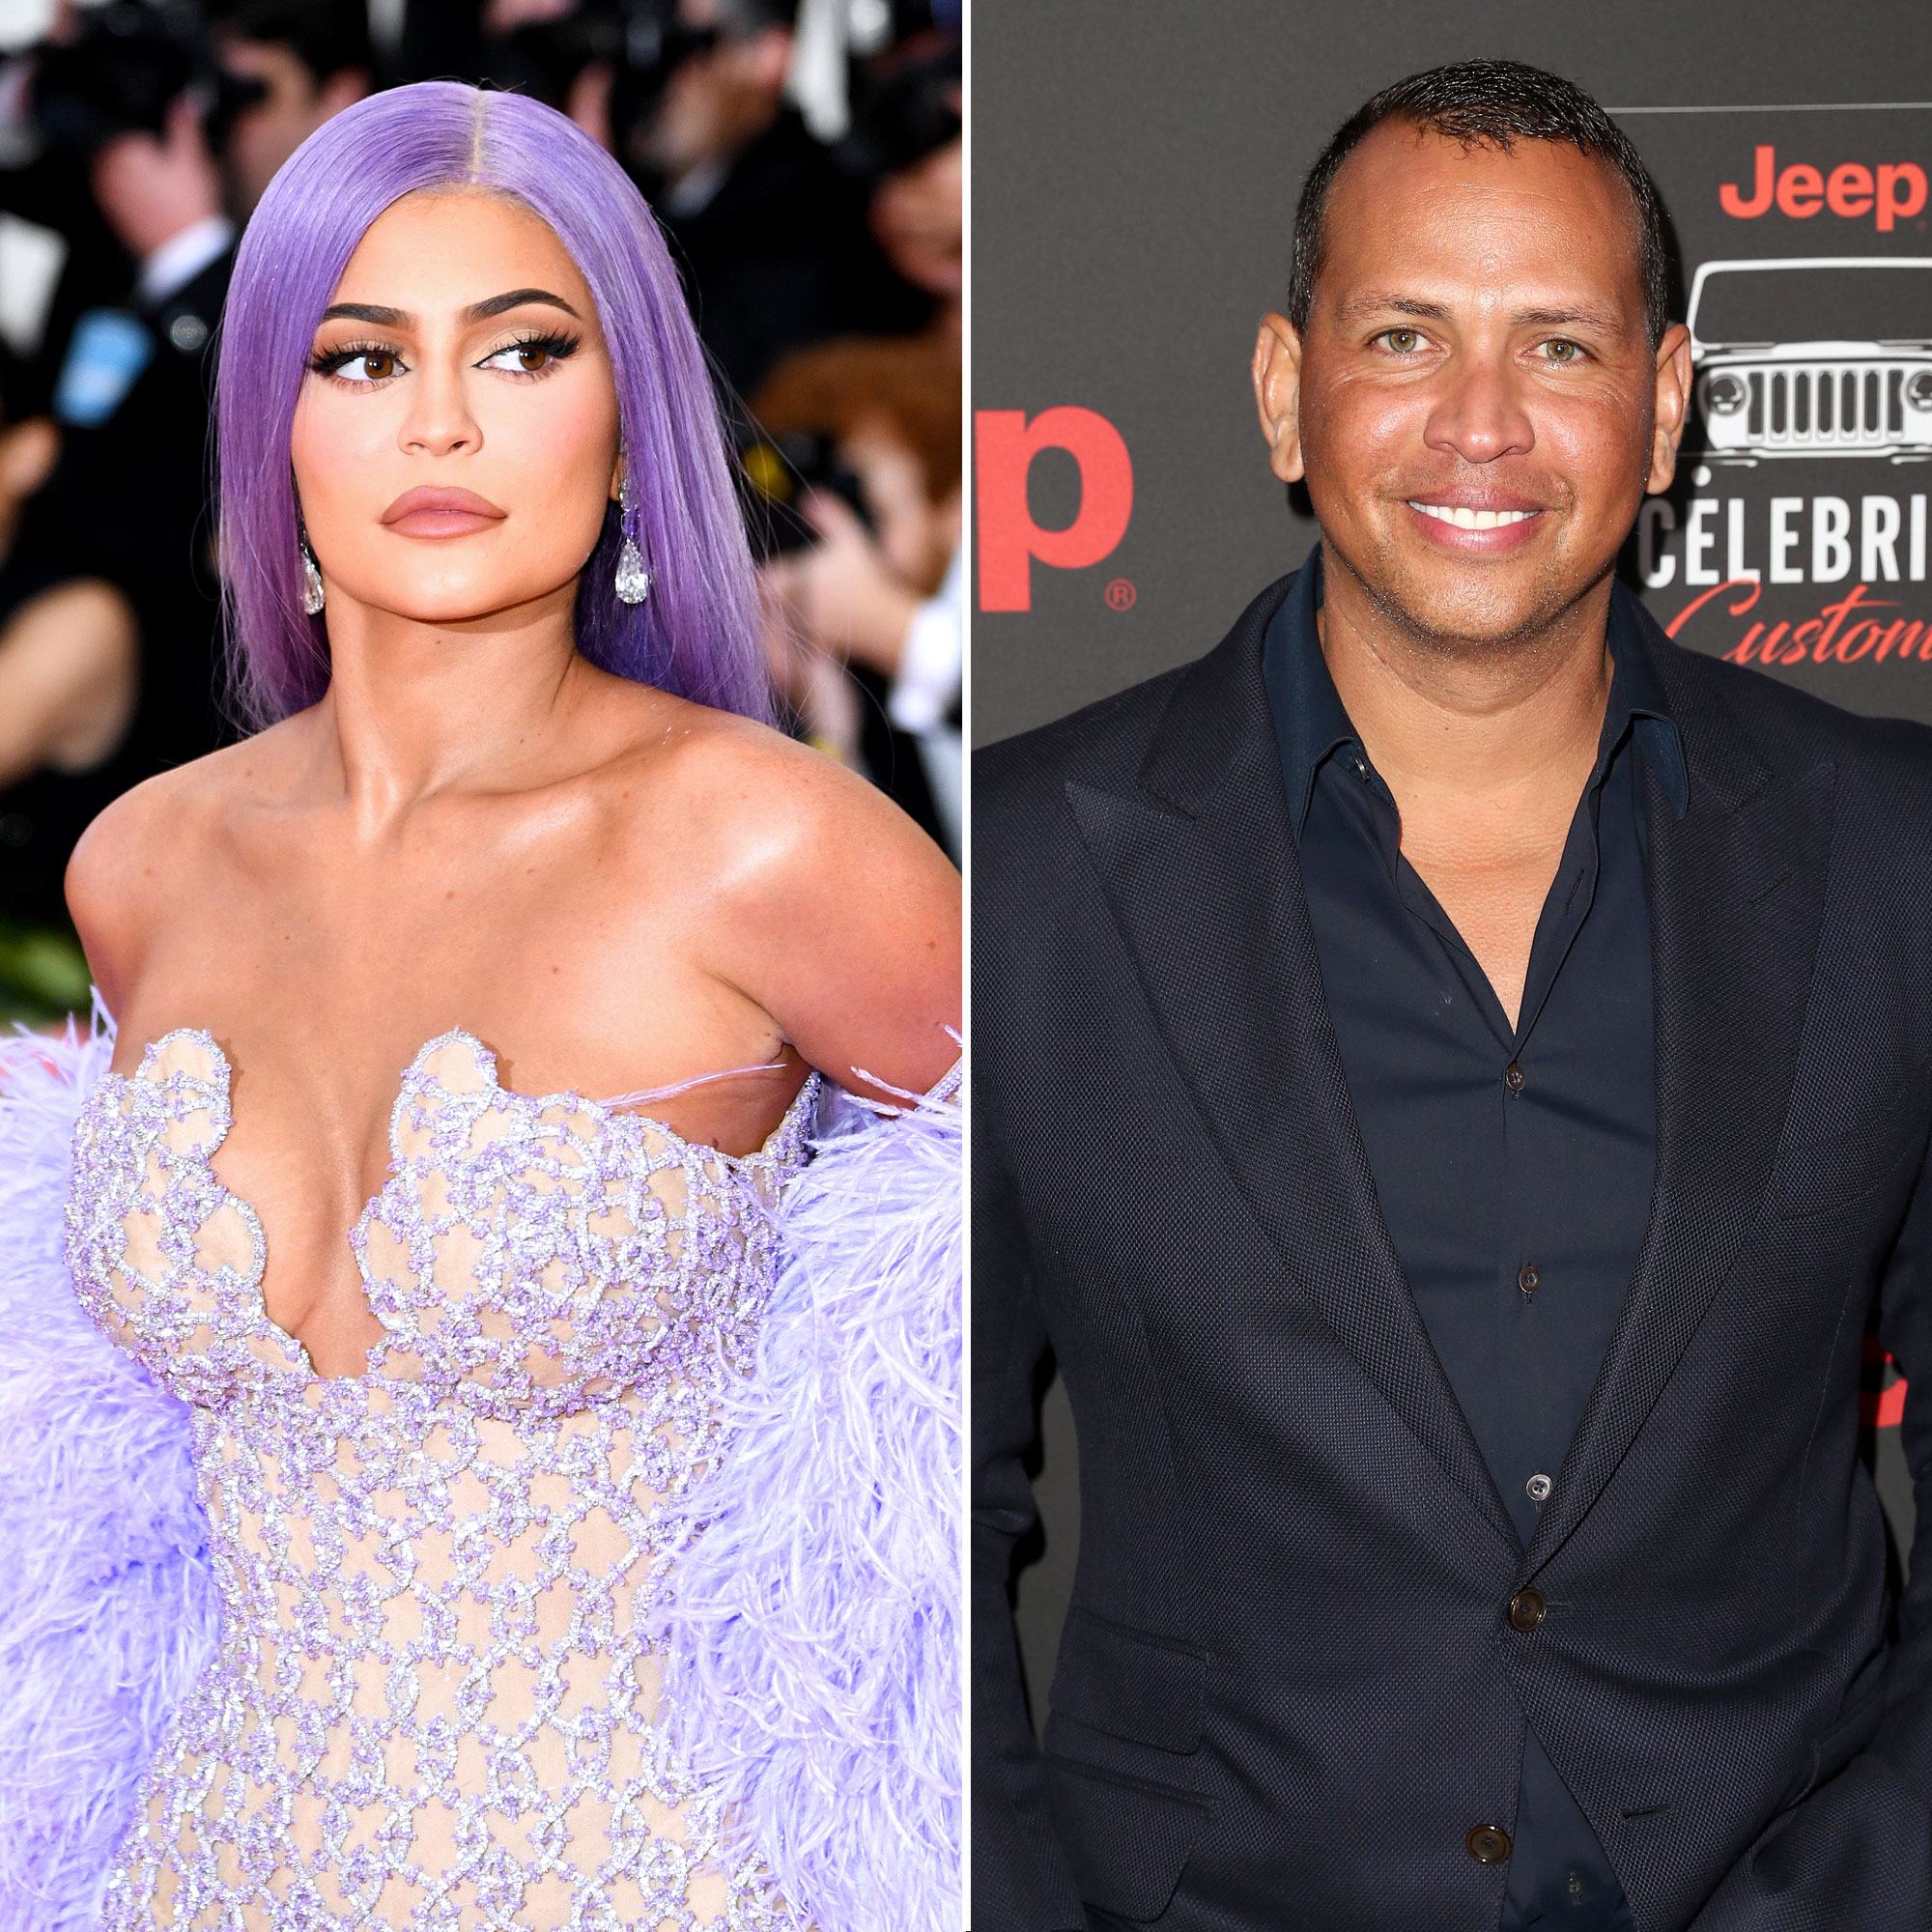 f08e0e34b7f7 Kylie Jenner Disputes Alex Rodriguez's Claim That She Talked About Her  Wealth at the 2019 Met Gala